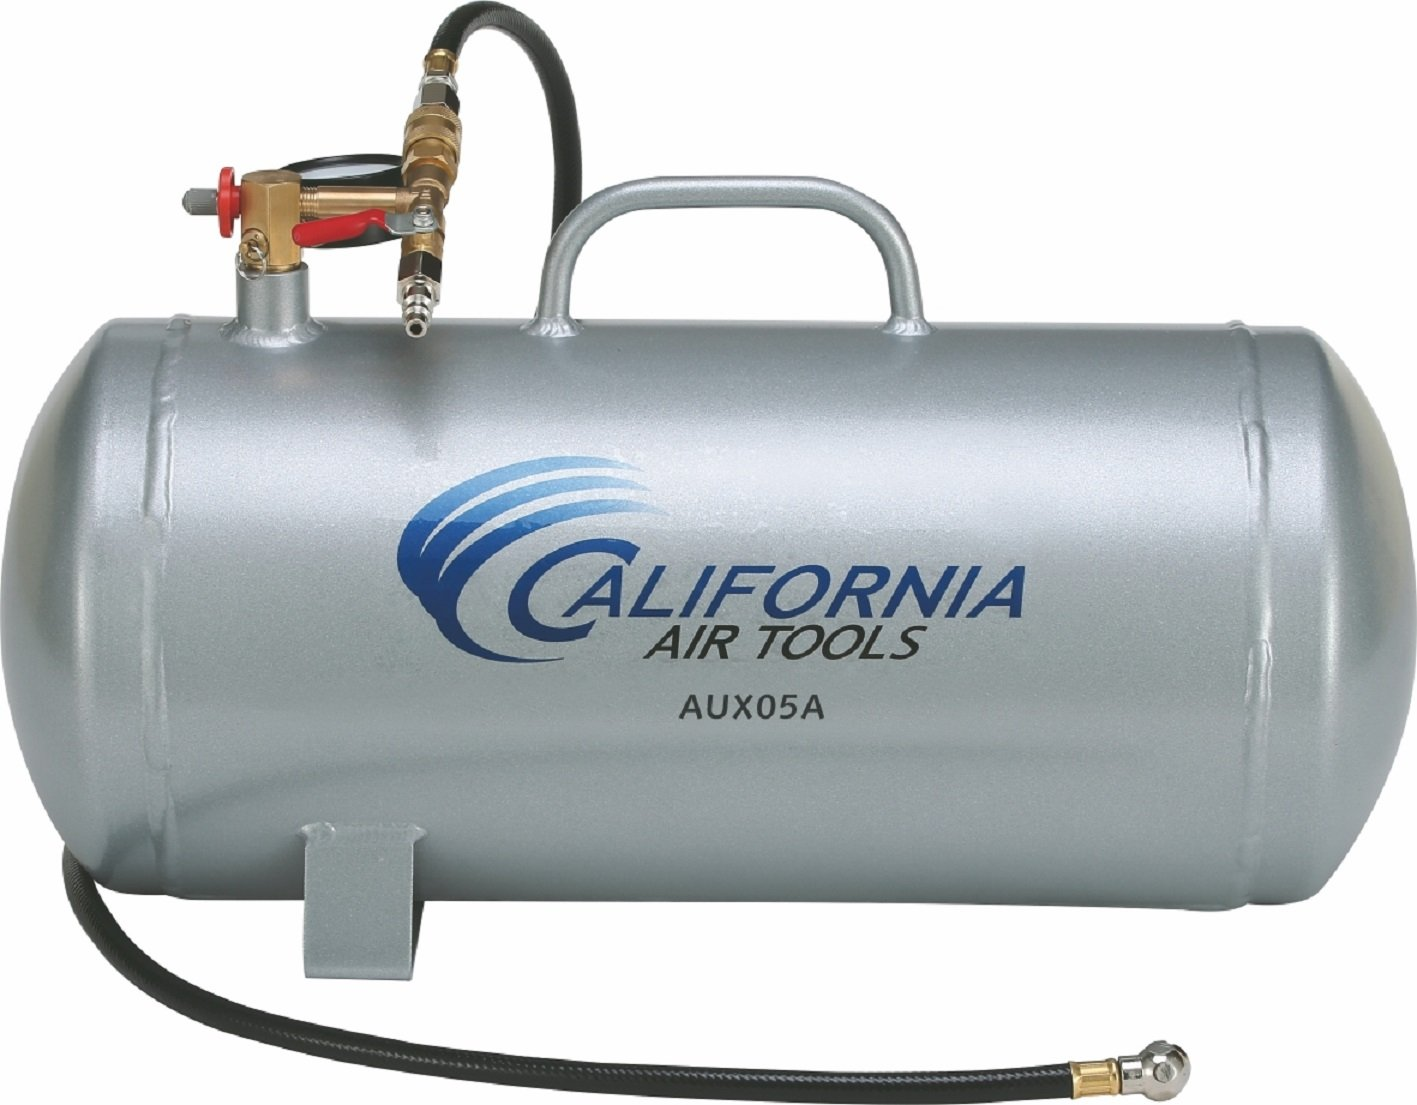 California Air Tools AUX10 Portable Air Tank, 10 gallon